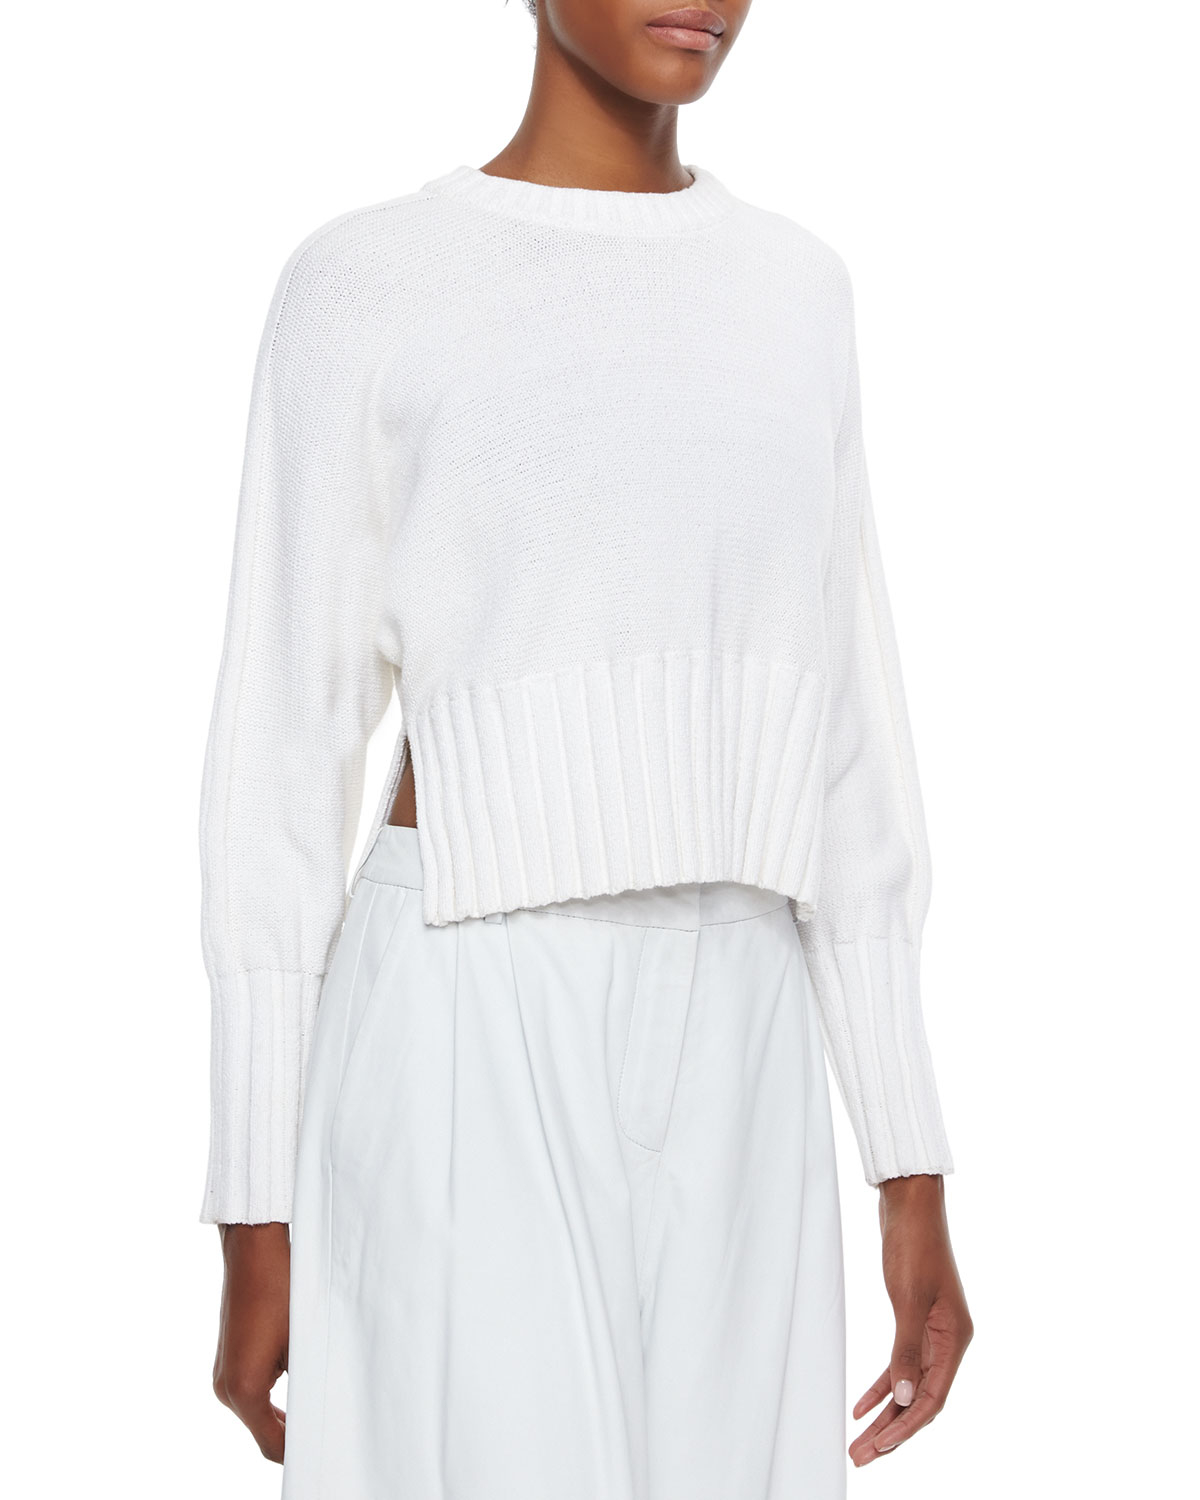 62b47c873e Lyst - T By Alexander Wang Chunky Knit Cropped Pullover Sweater in White